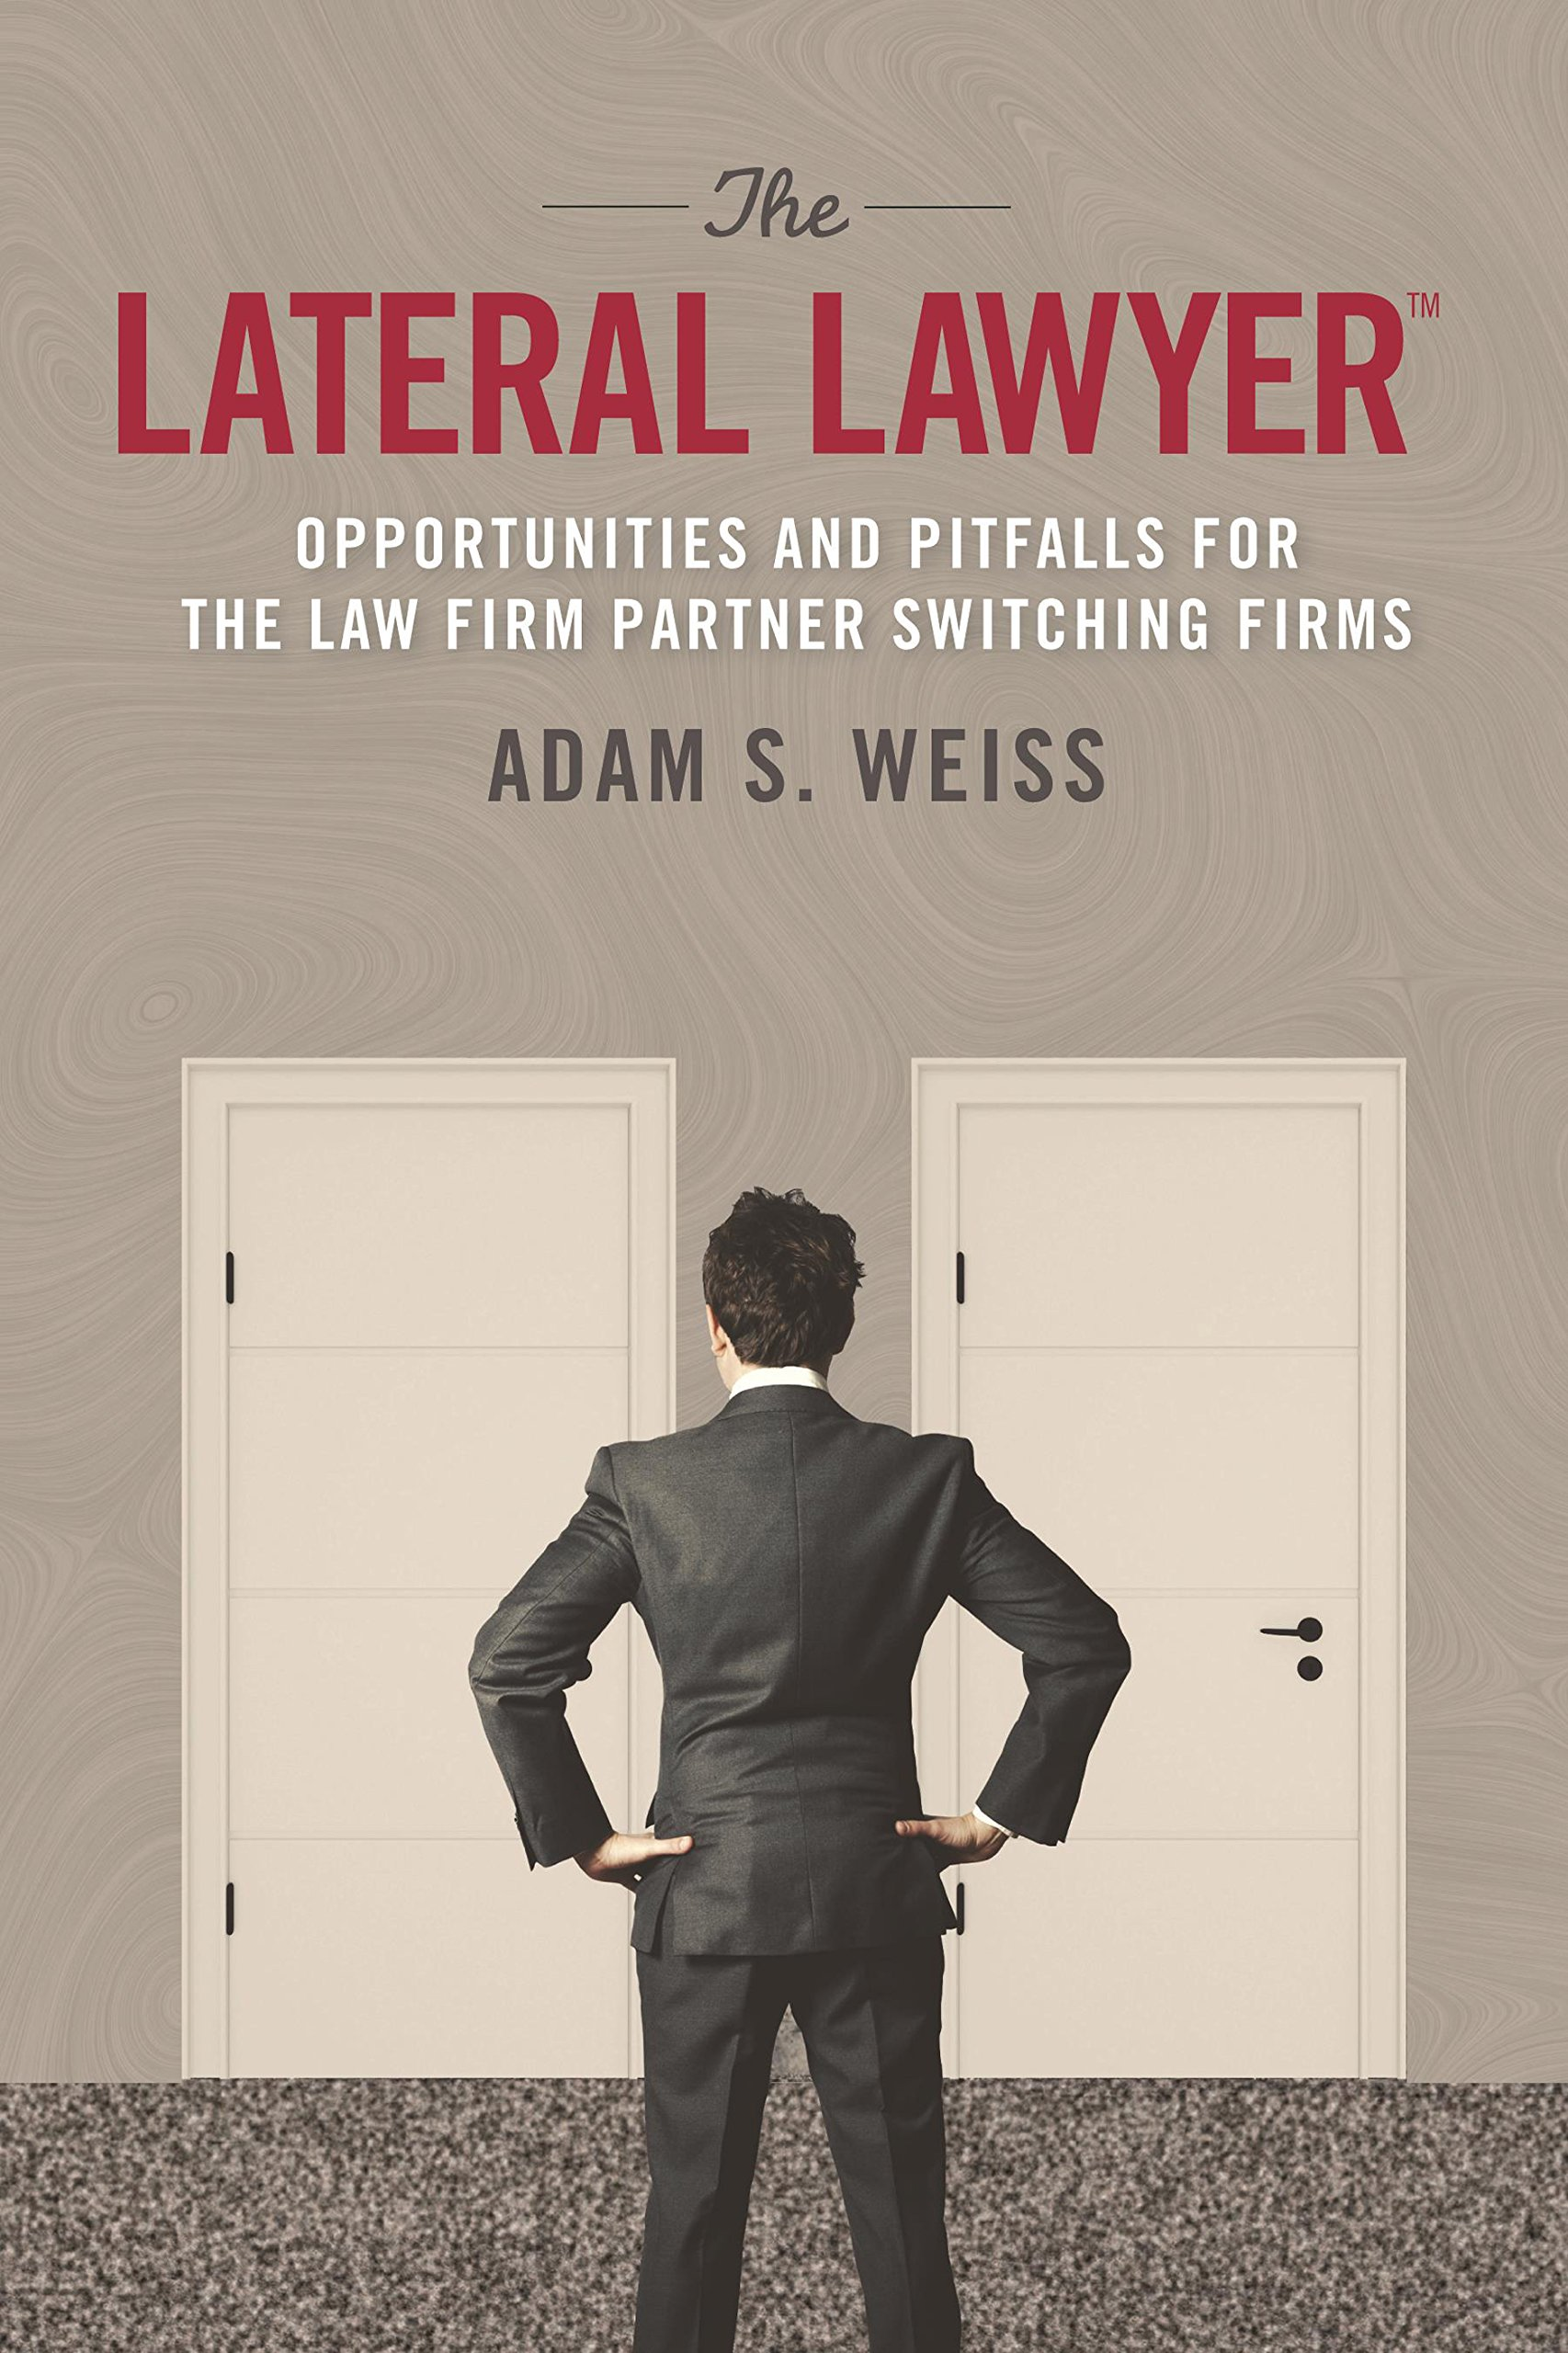 The Lateral Lawyer: Opportunities and Pitfalls for the Law Firm Partner Switching Firms PDF